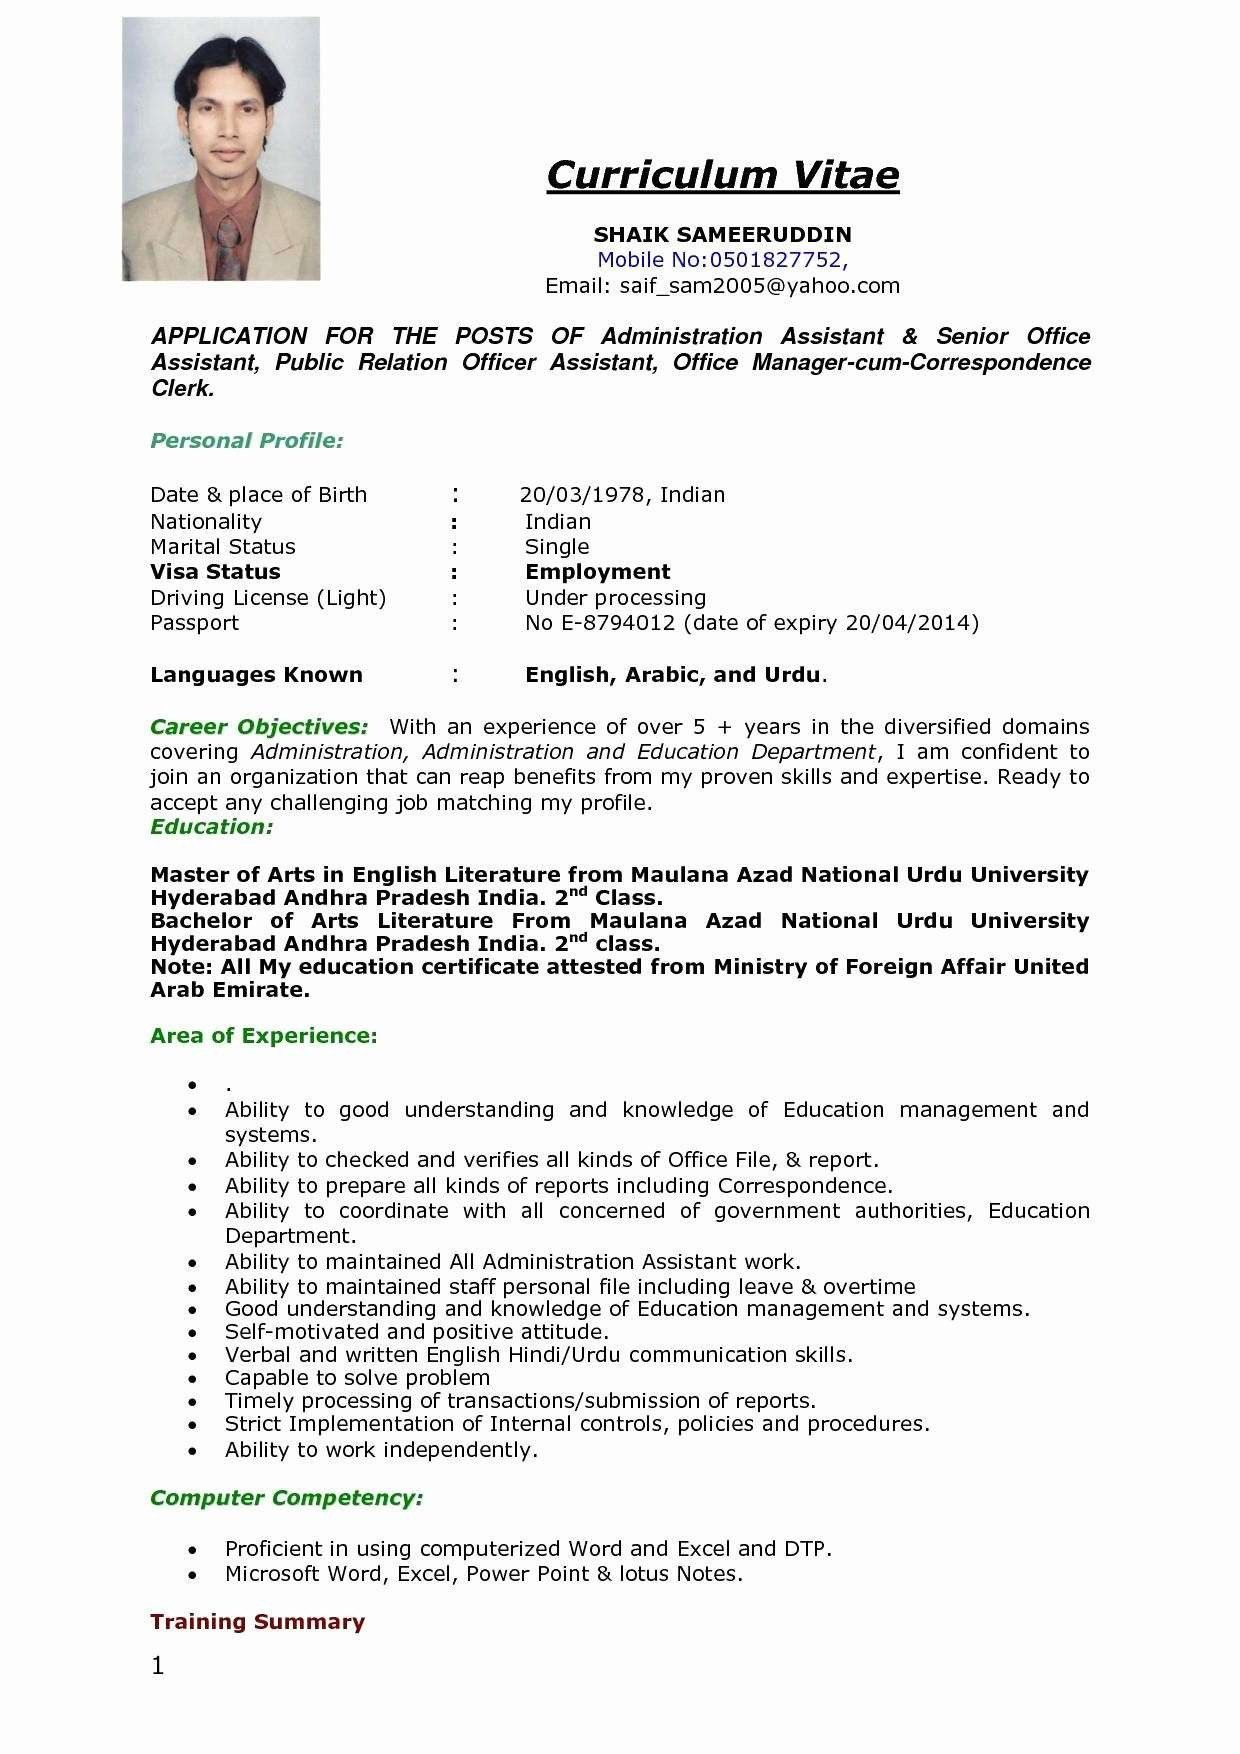 Office Assistant Resume Sample Pdf Lovely Business License Template Awesome Resume Sample New Blank Job Resume Format Job Resume Samples Curriculum Vitae